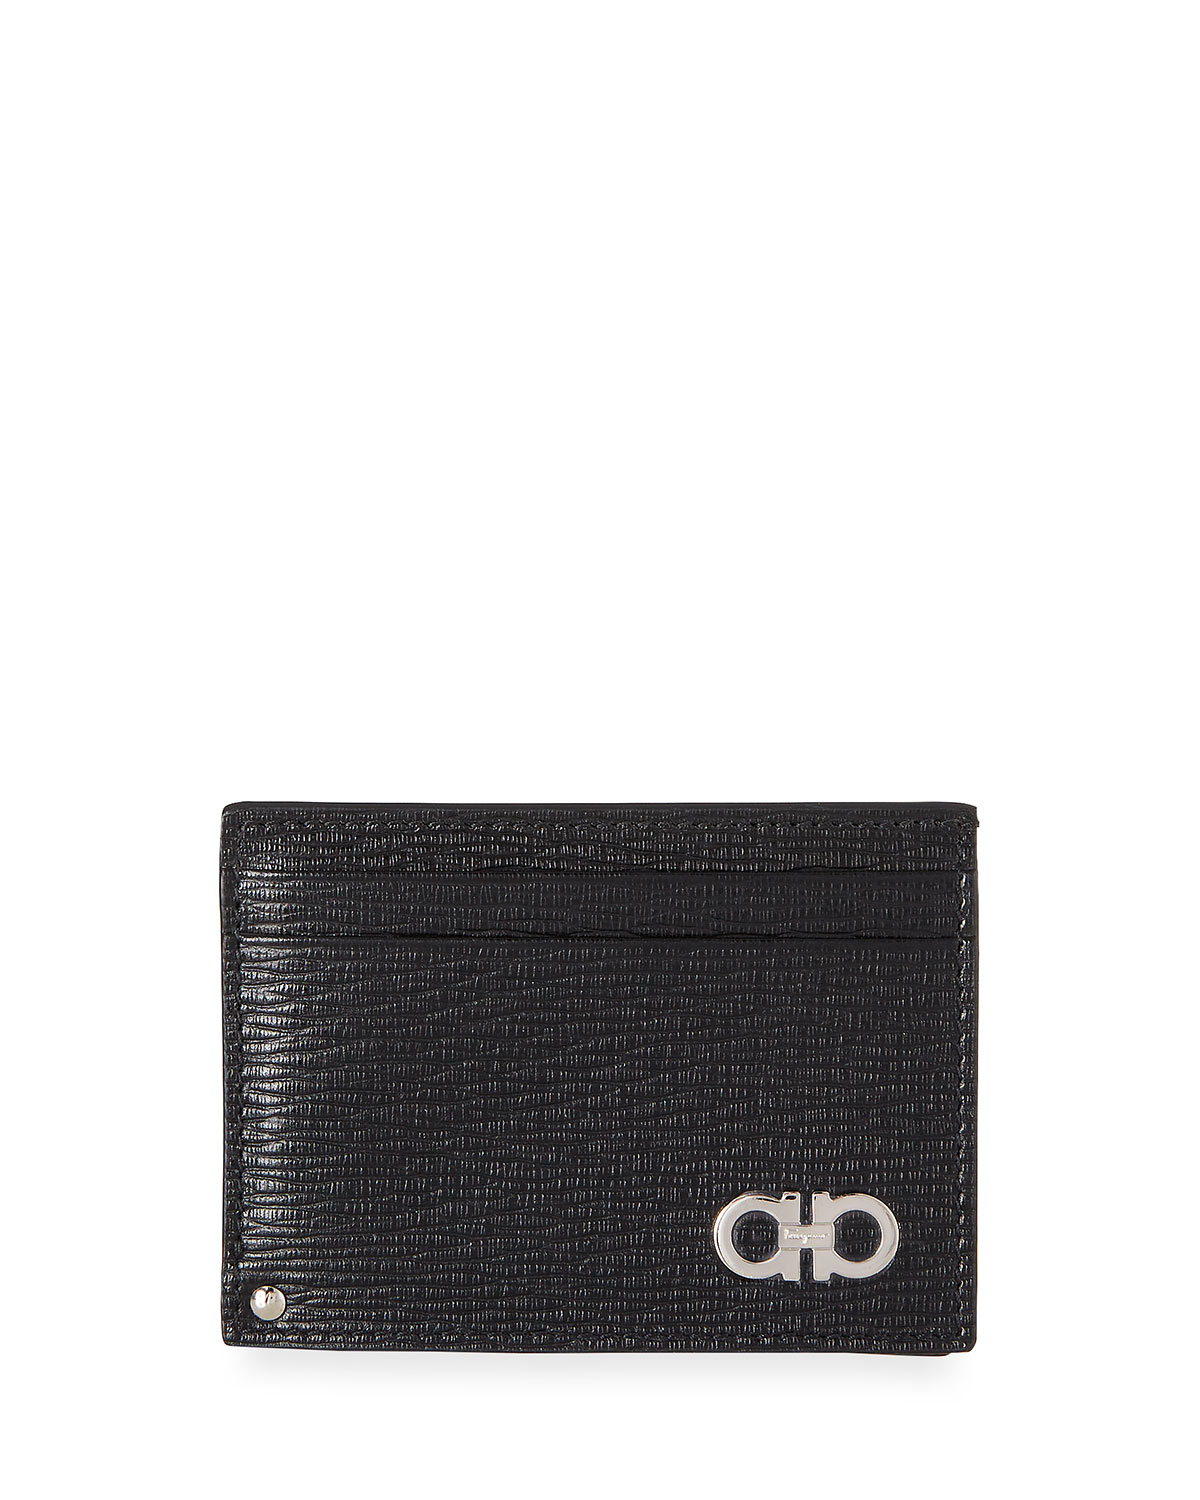 Men's Revival Gancini Leather Card Case with Flip-Out ID Window